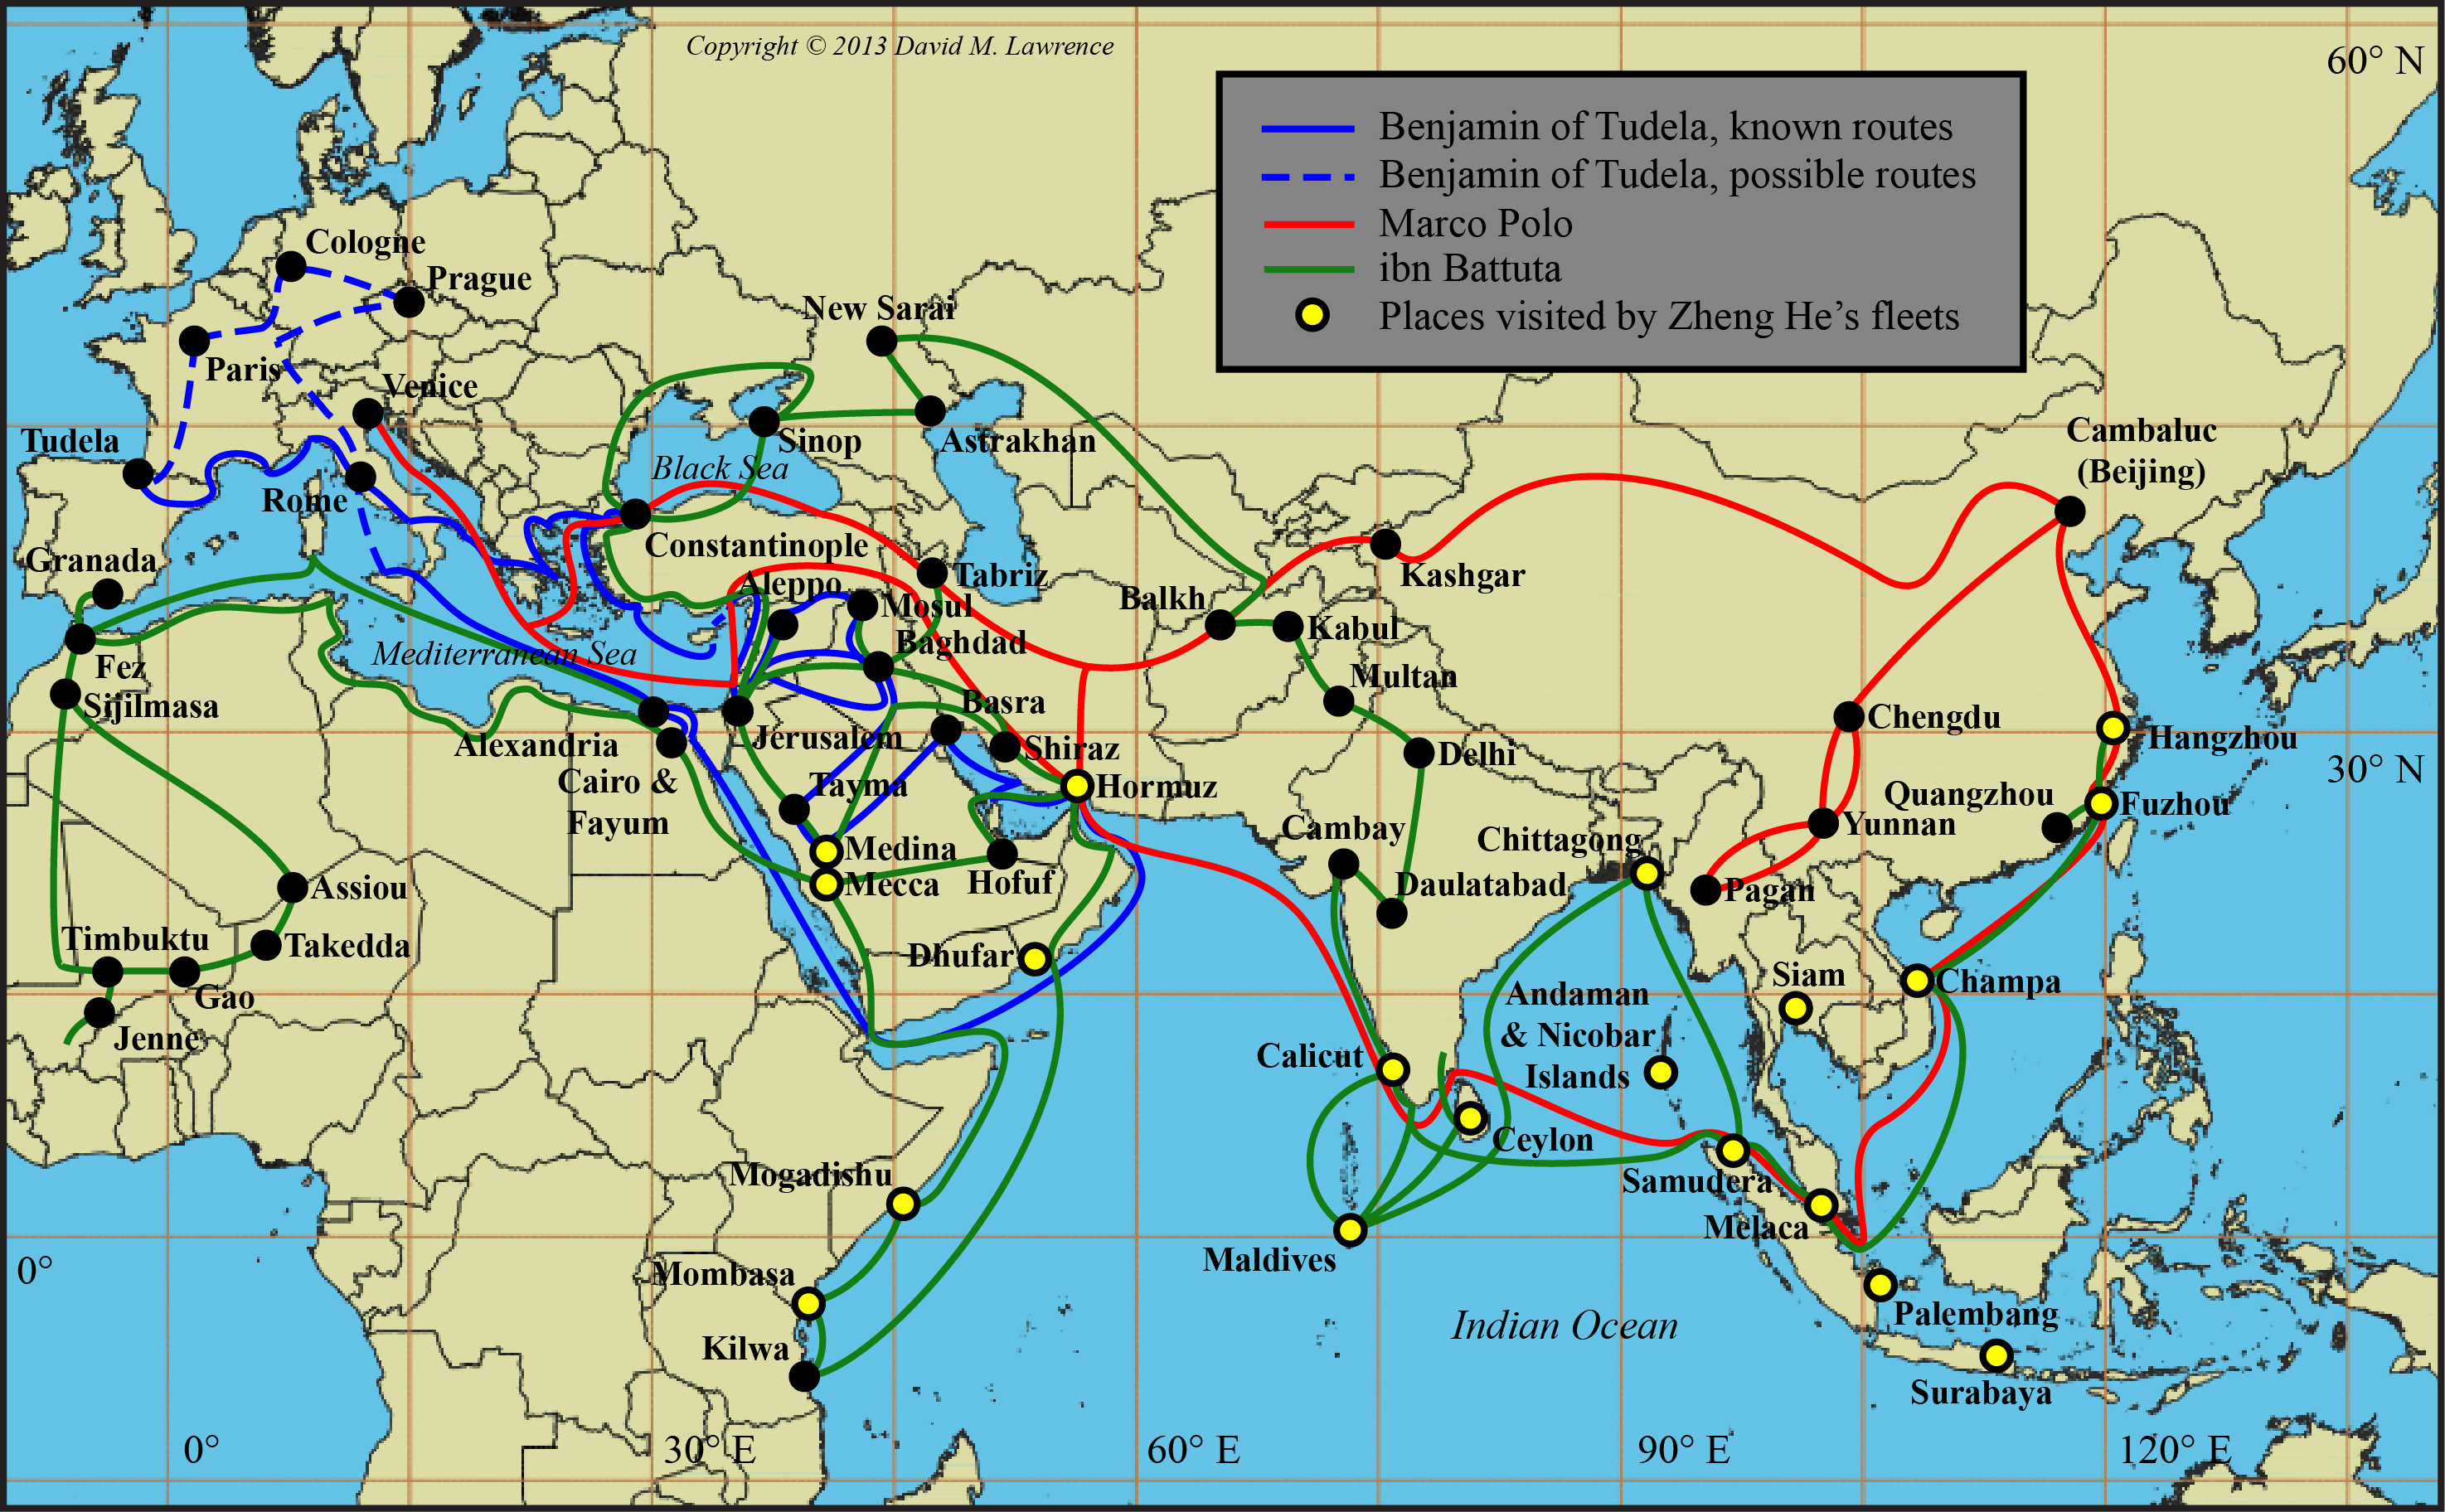 Ying-Yai Sheng-lan (The Overall Survey of the Ocean's Ss [1433 ... on columbus route map, leif ericsson route map, leif ericson route map, marco polo route map, vasco da gama route map, giovanni da verrazzano route map, martin frobisher route map, roald amundsen route map, john cabot route map, ibn battuta route map, silk road route map, desoto route map, eric the red route map, hernan cortes route map, henry hudson route map, leif erikson route map, dias route map, magellan route map, hernando de soto route map, mansa musa route map,